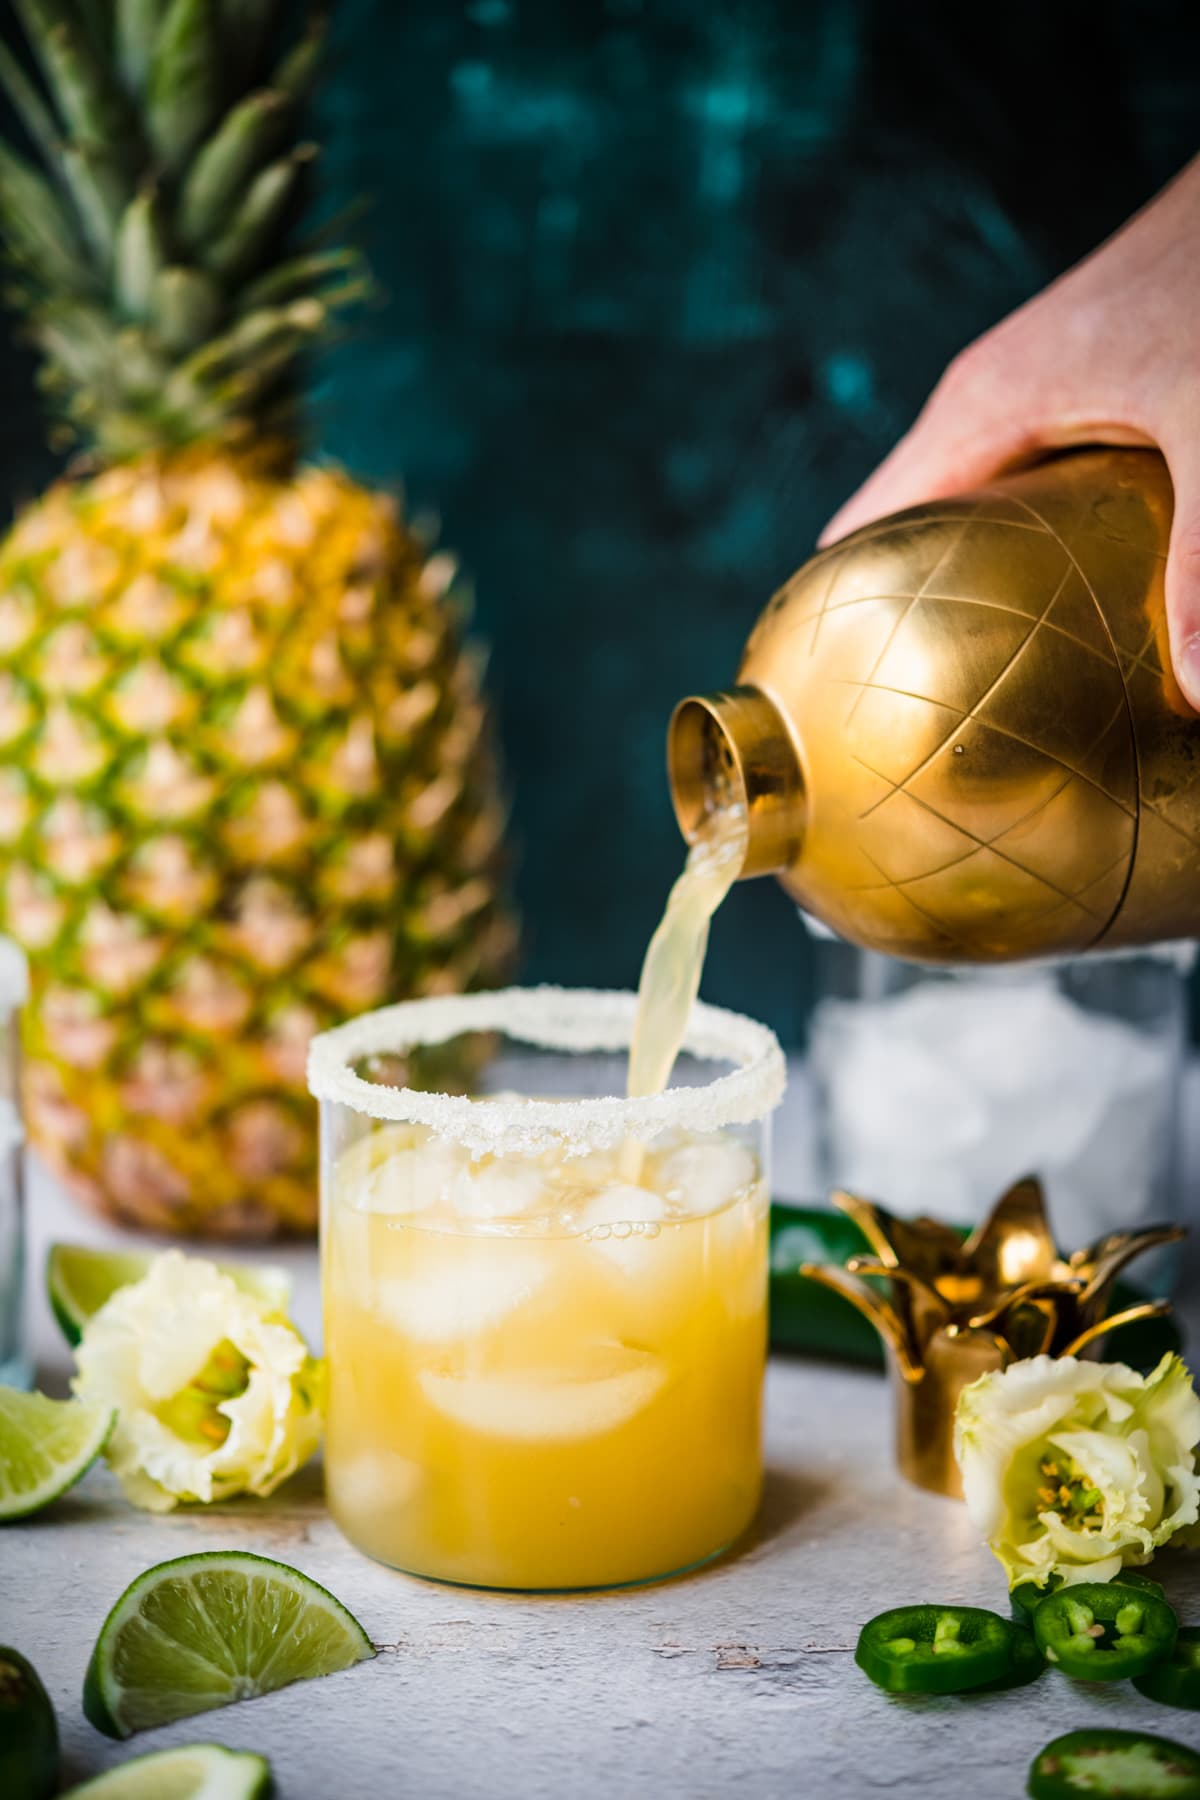 pouring pineapple jalapeño margarita from cocktail shaker into glass with salt rim and ice.